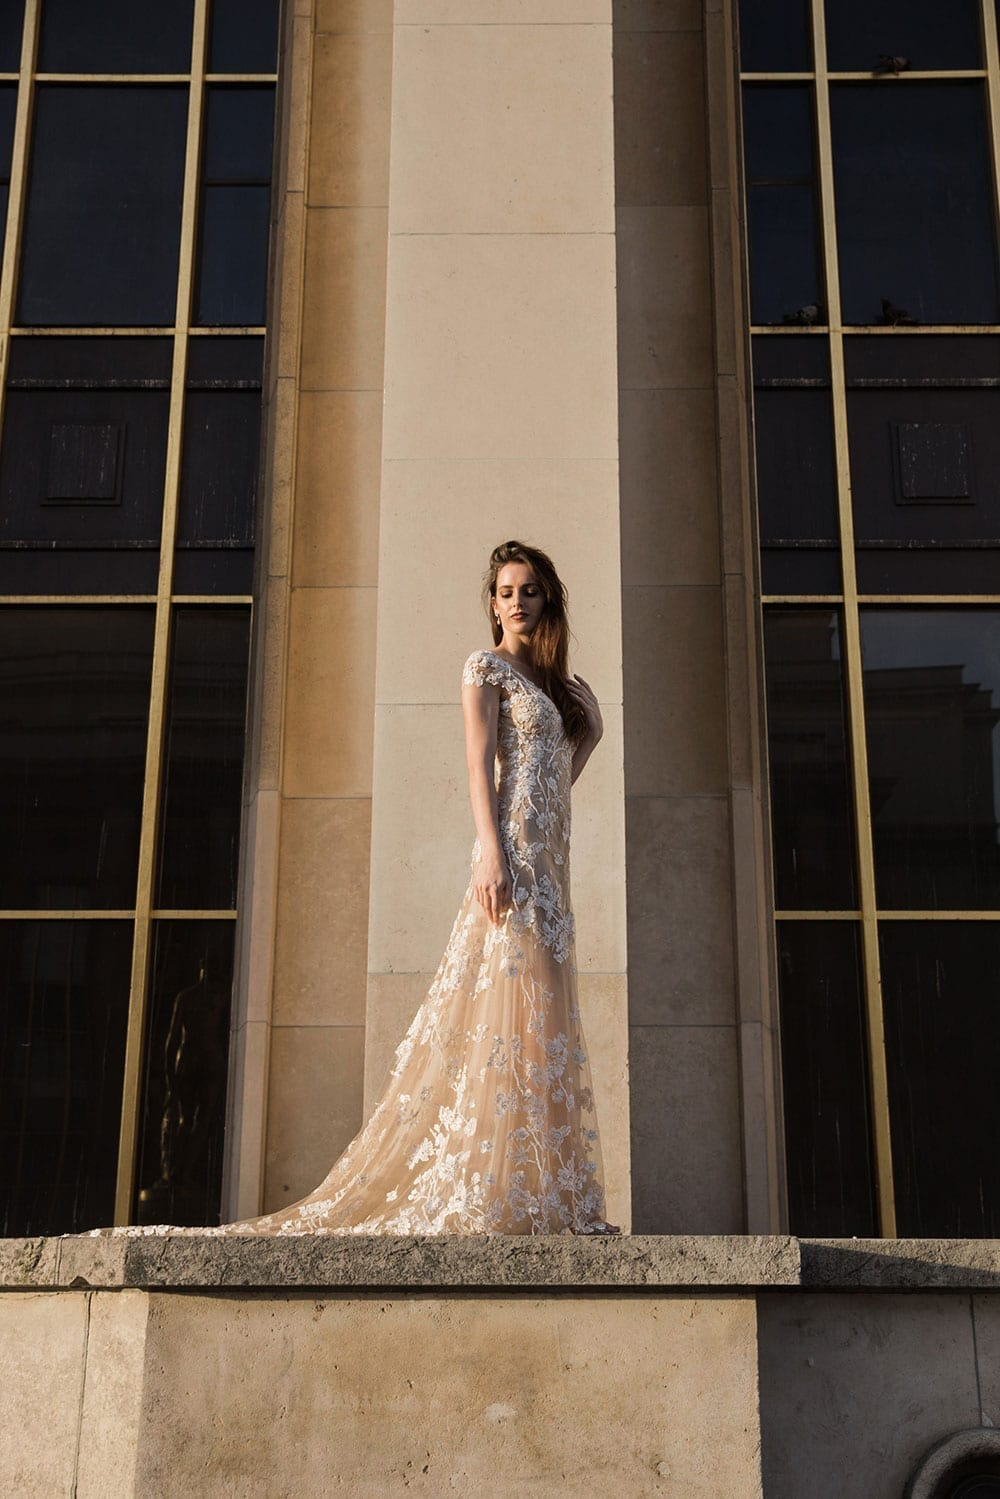 Model wearing Vinka Design Vianna Wedding Dress, a dreamy wedding dress with richly beaded embroidery on a nude base, a slightly sheer skirt and elegant train. Gorgeous low back, little cap sleeves and front v-neckline. full length in front of large column in Paris.